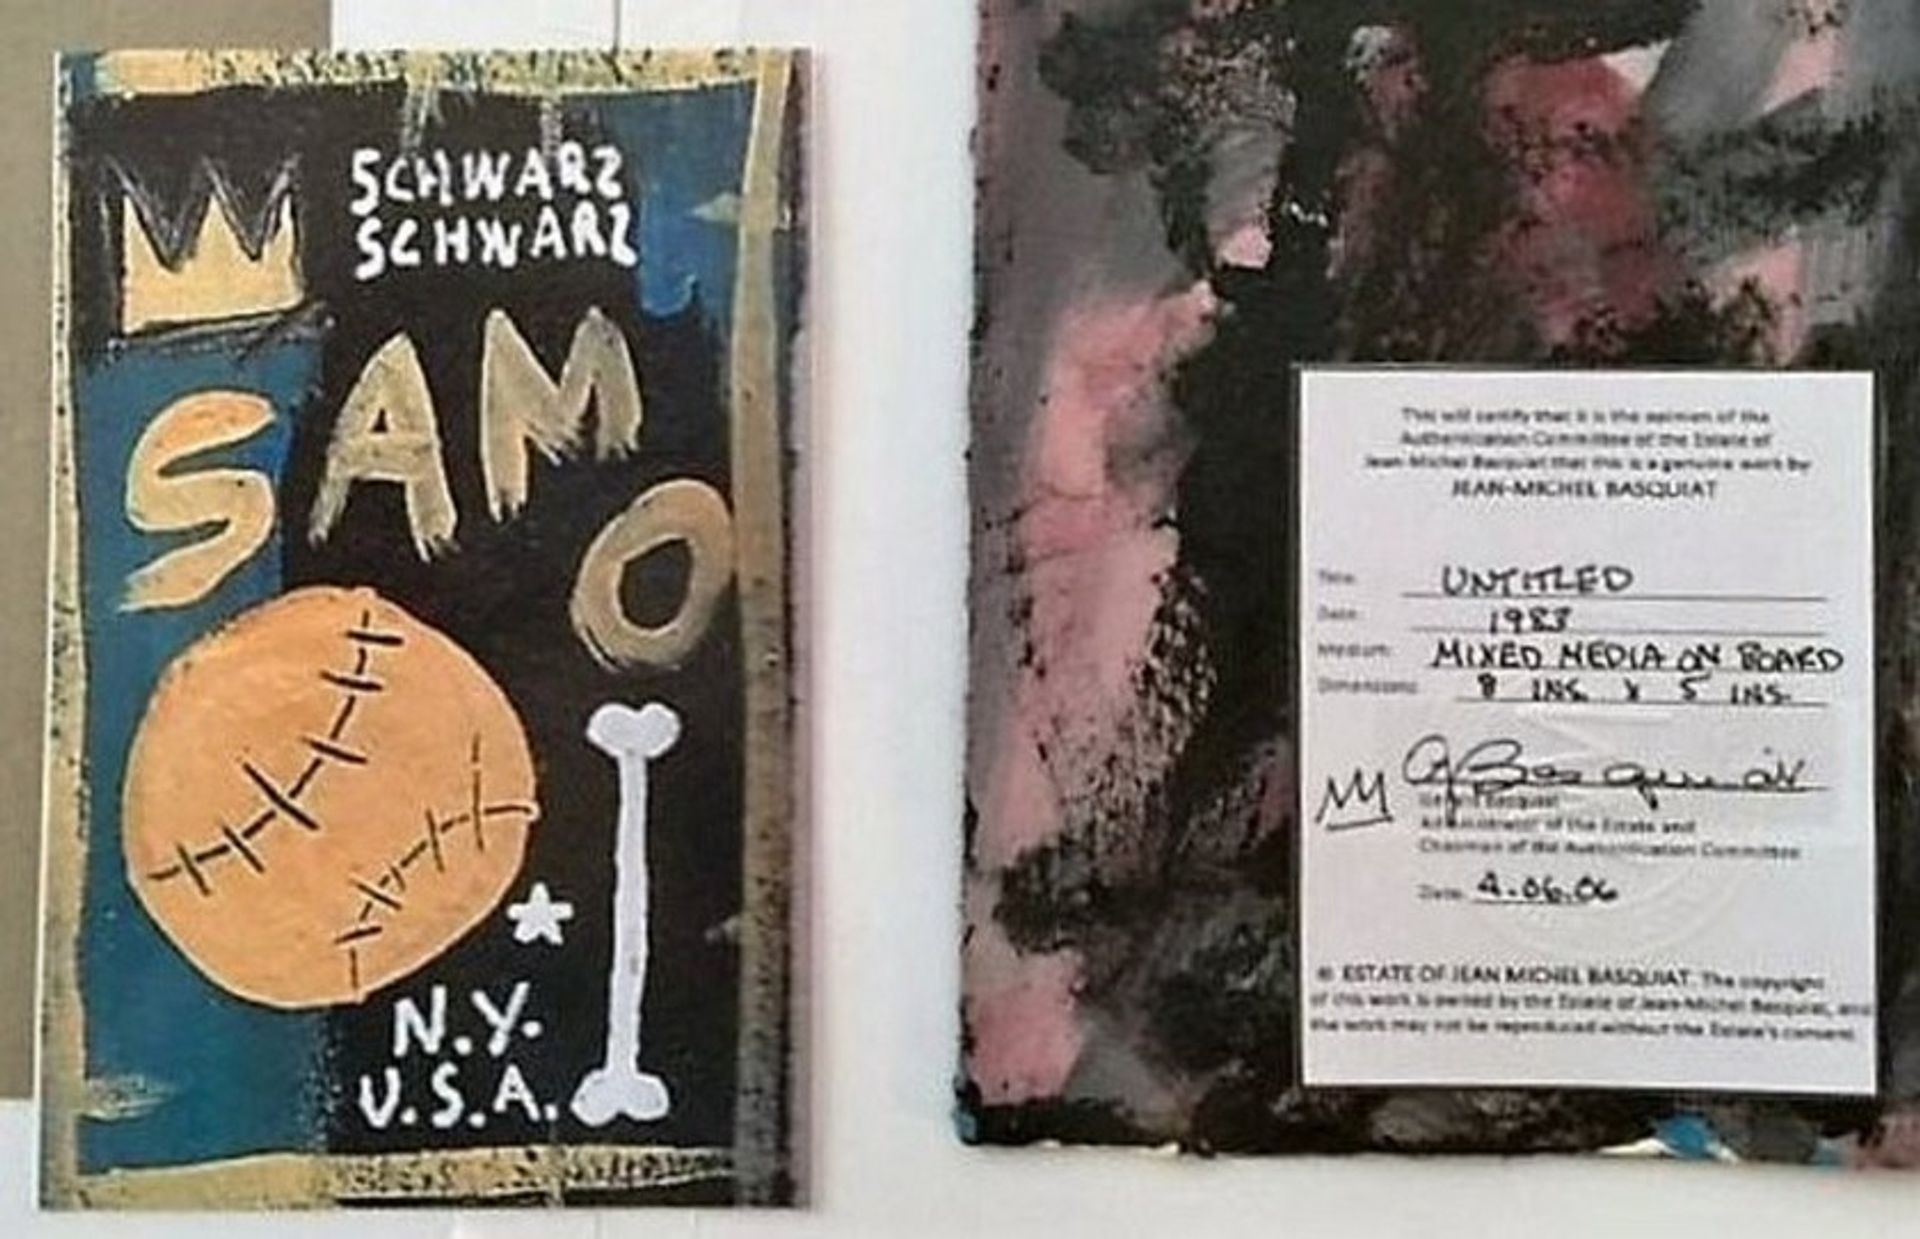 Philip Righter  tried to sell this fake artwork by Jean-Michel Basquiat, the US attorney says. AP